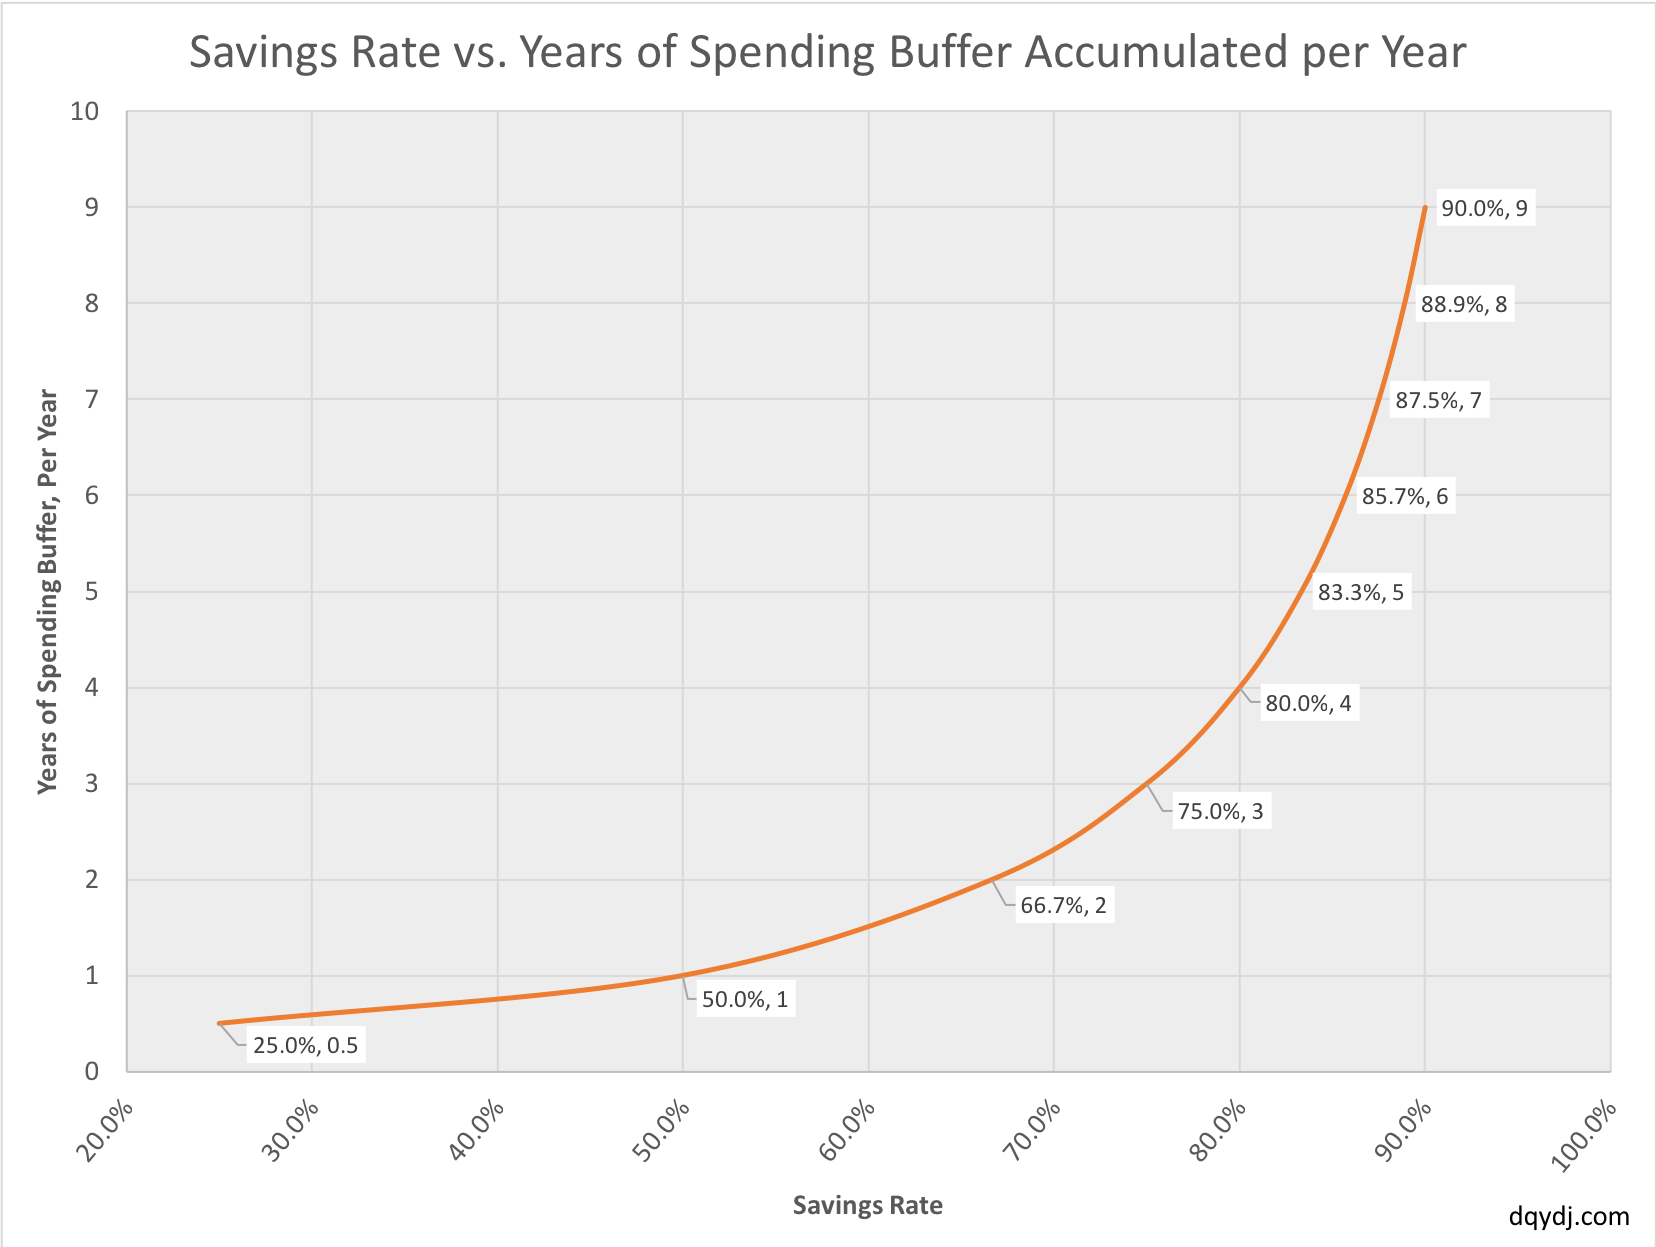 Magic savings rates that show number of years of spending buffer added annually.